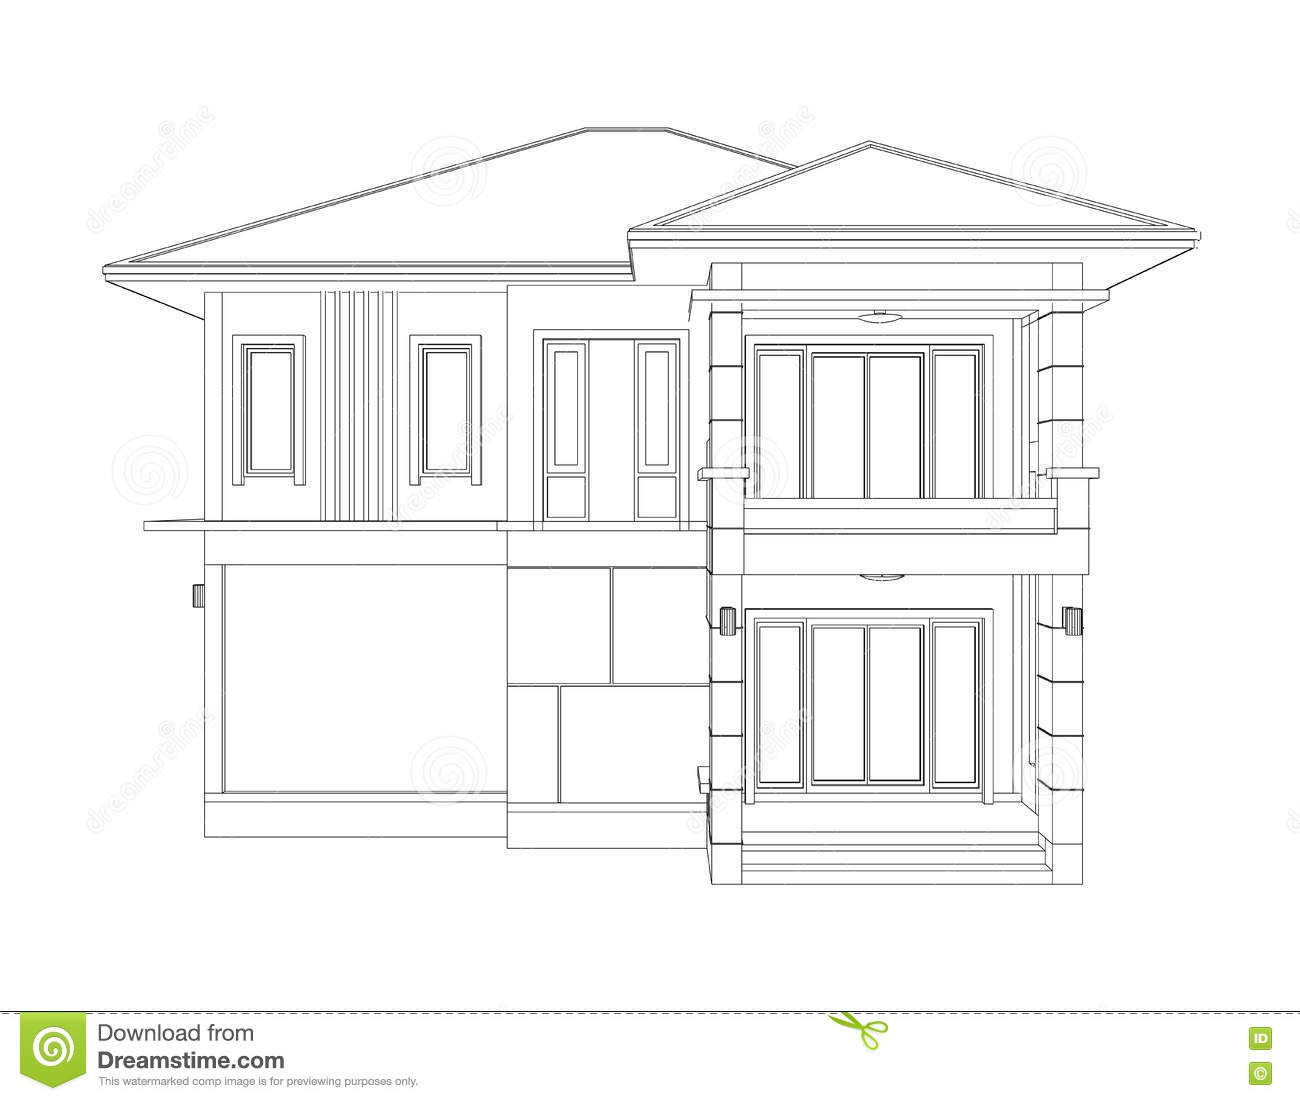 Drawing of 3d home building front view stock illustration blueprint drawing of 3d home building front view malvernweather Image collections